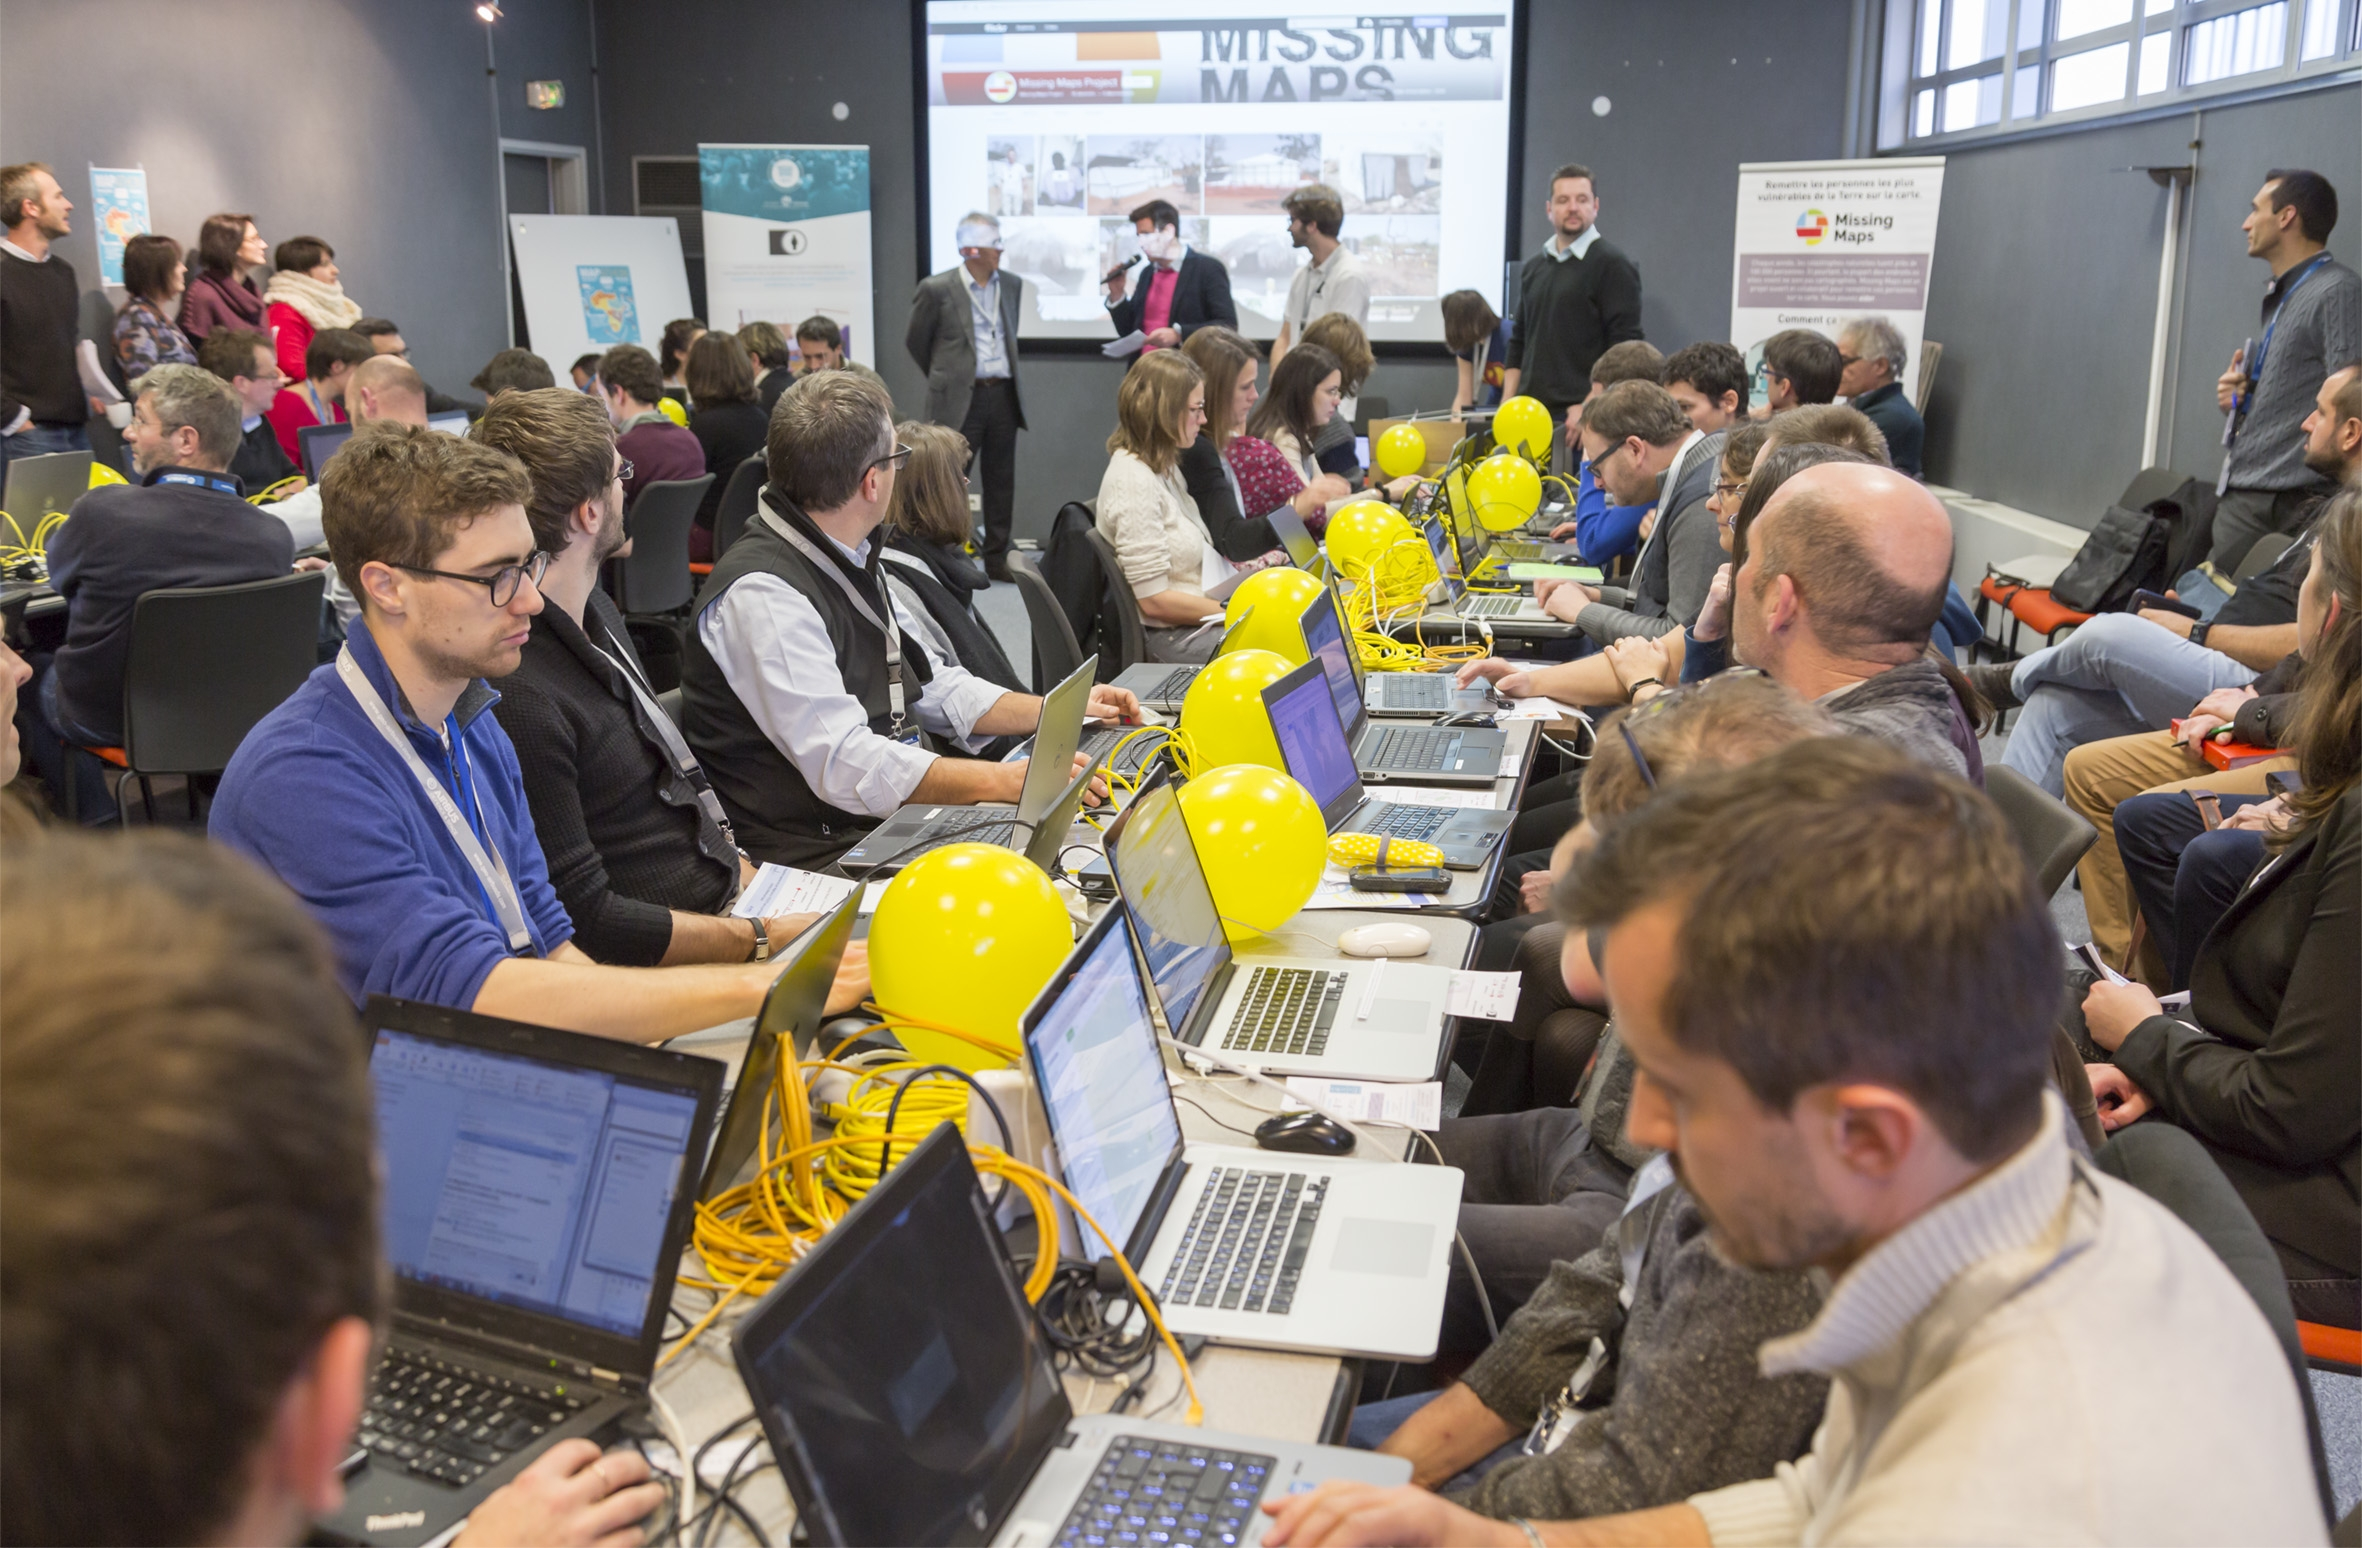 is_mapathon_toulouse_012017_2.jpg